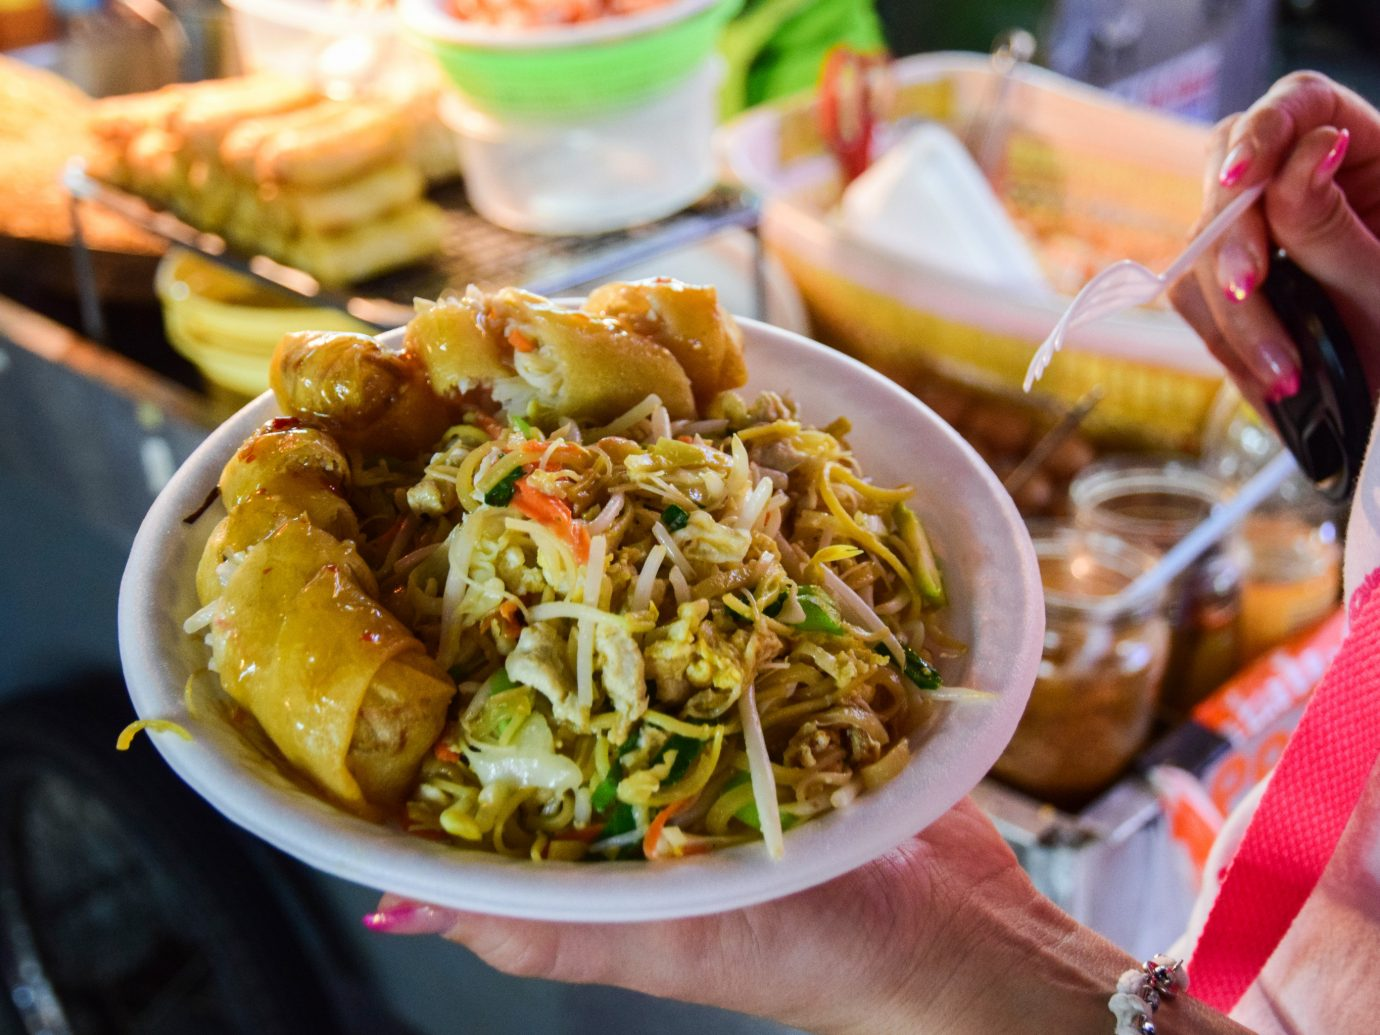 Jetsetter Guides person food dish meal cuisine asian food thai food street food sense chinese food lunch southeast asian food